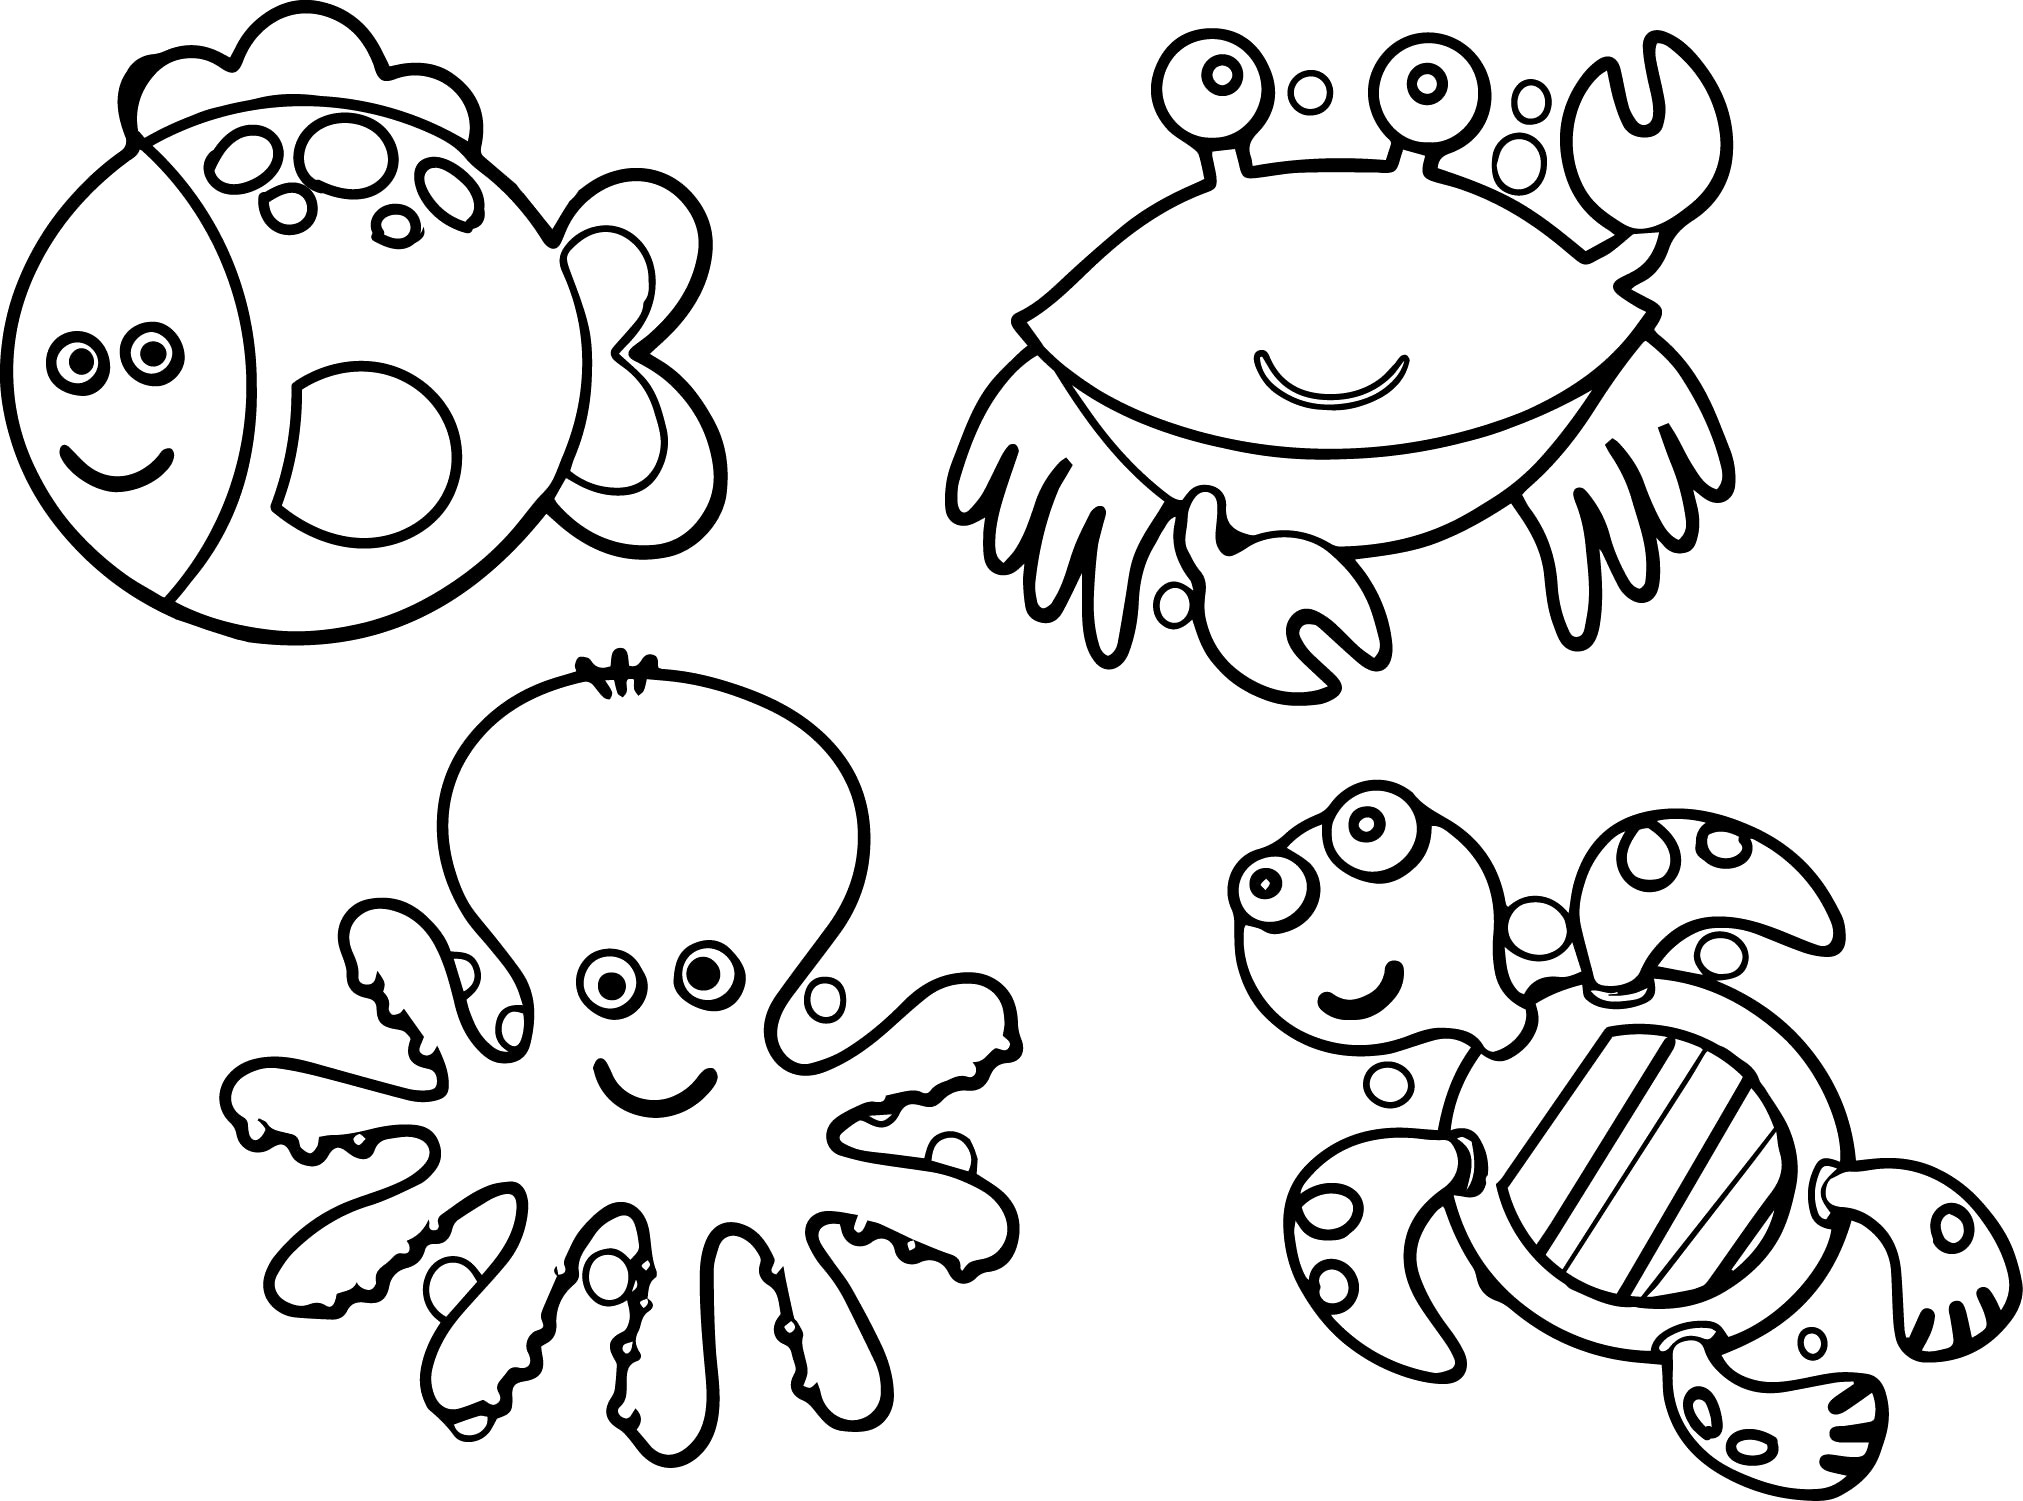 Sea Monster Coloring Pages Free Printable Animal Coloring Pages Unique Ocean Animals Of Sea